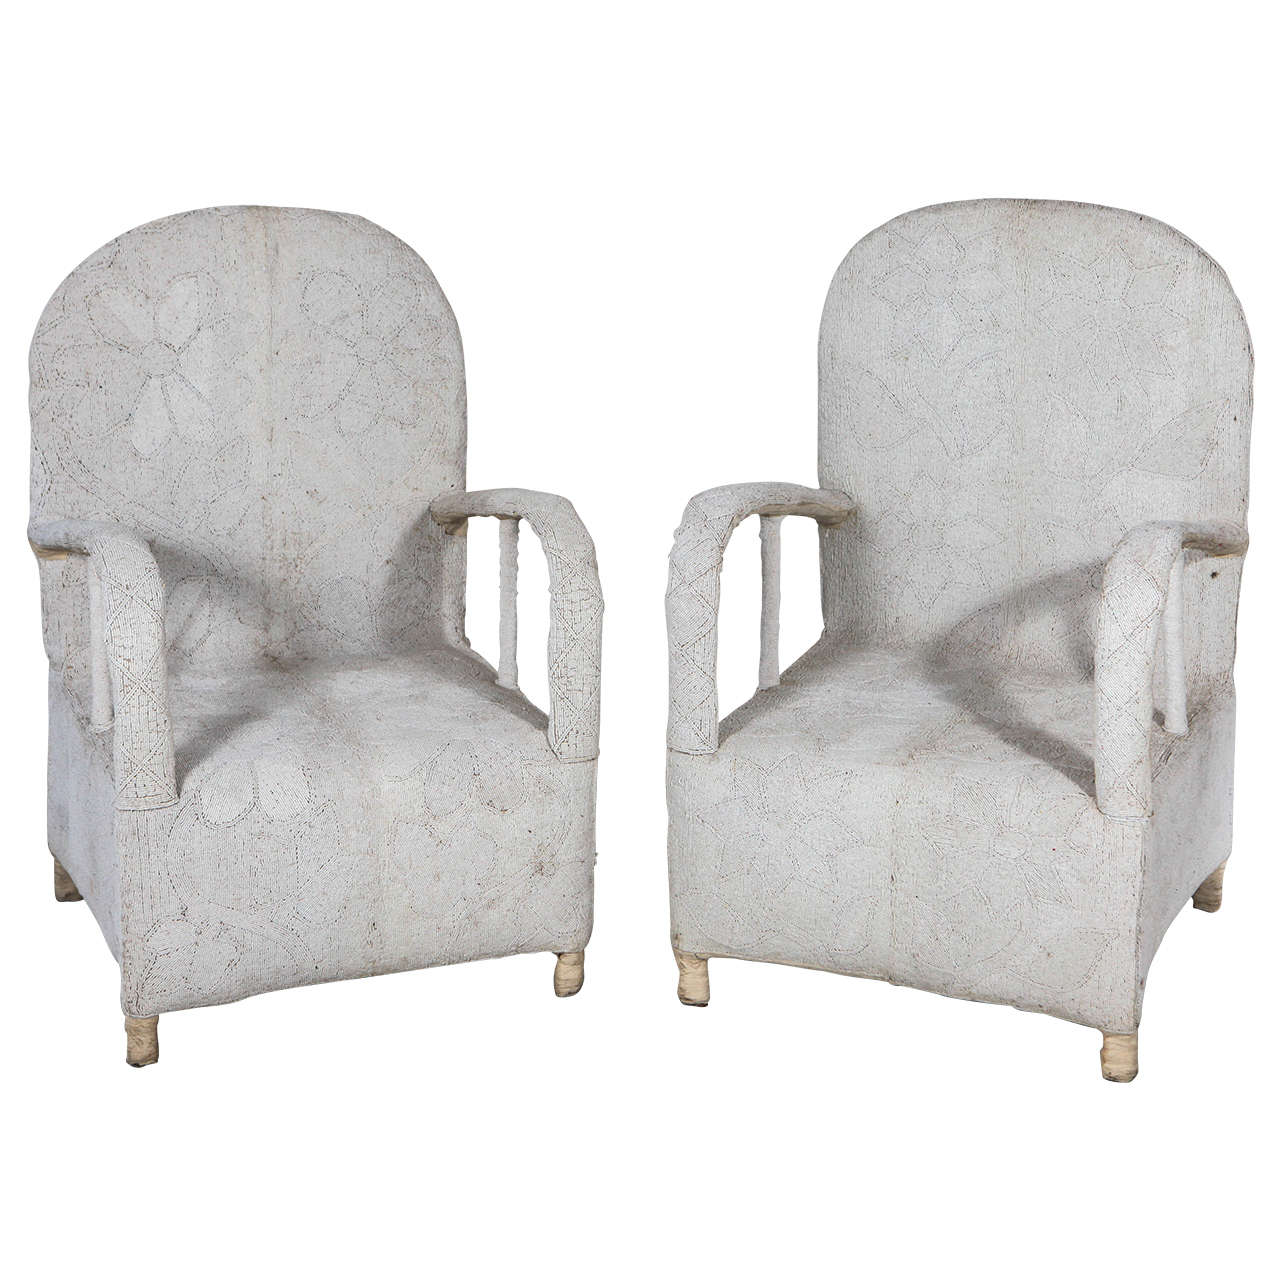 Superieur Pair Of White African Beaded Yoruba Chairs From Nigeria For Sale